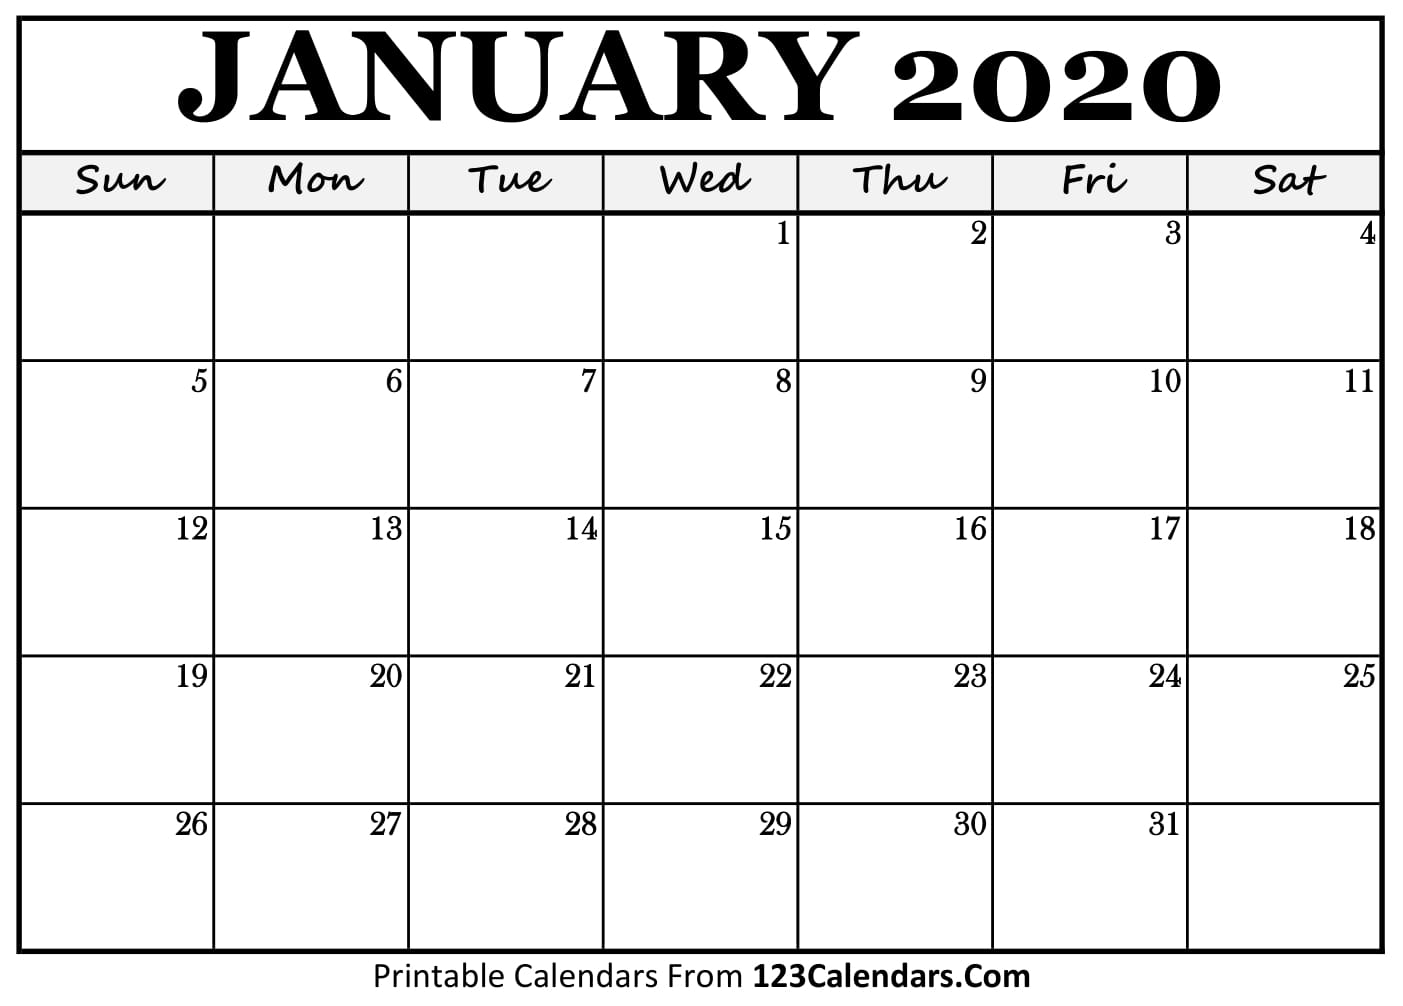 picture regarding 2020 Calendar Printable titled January 2020 Printable Calendar